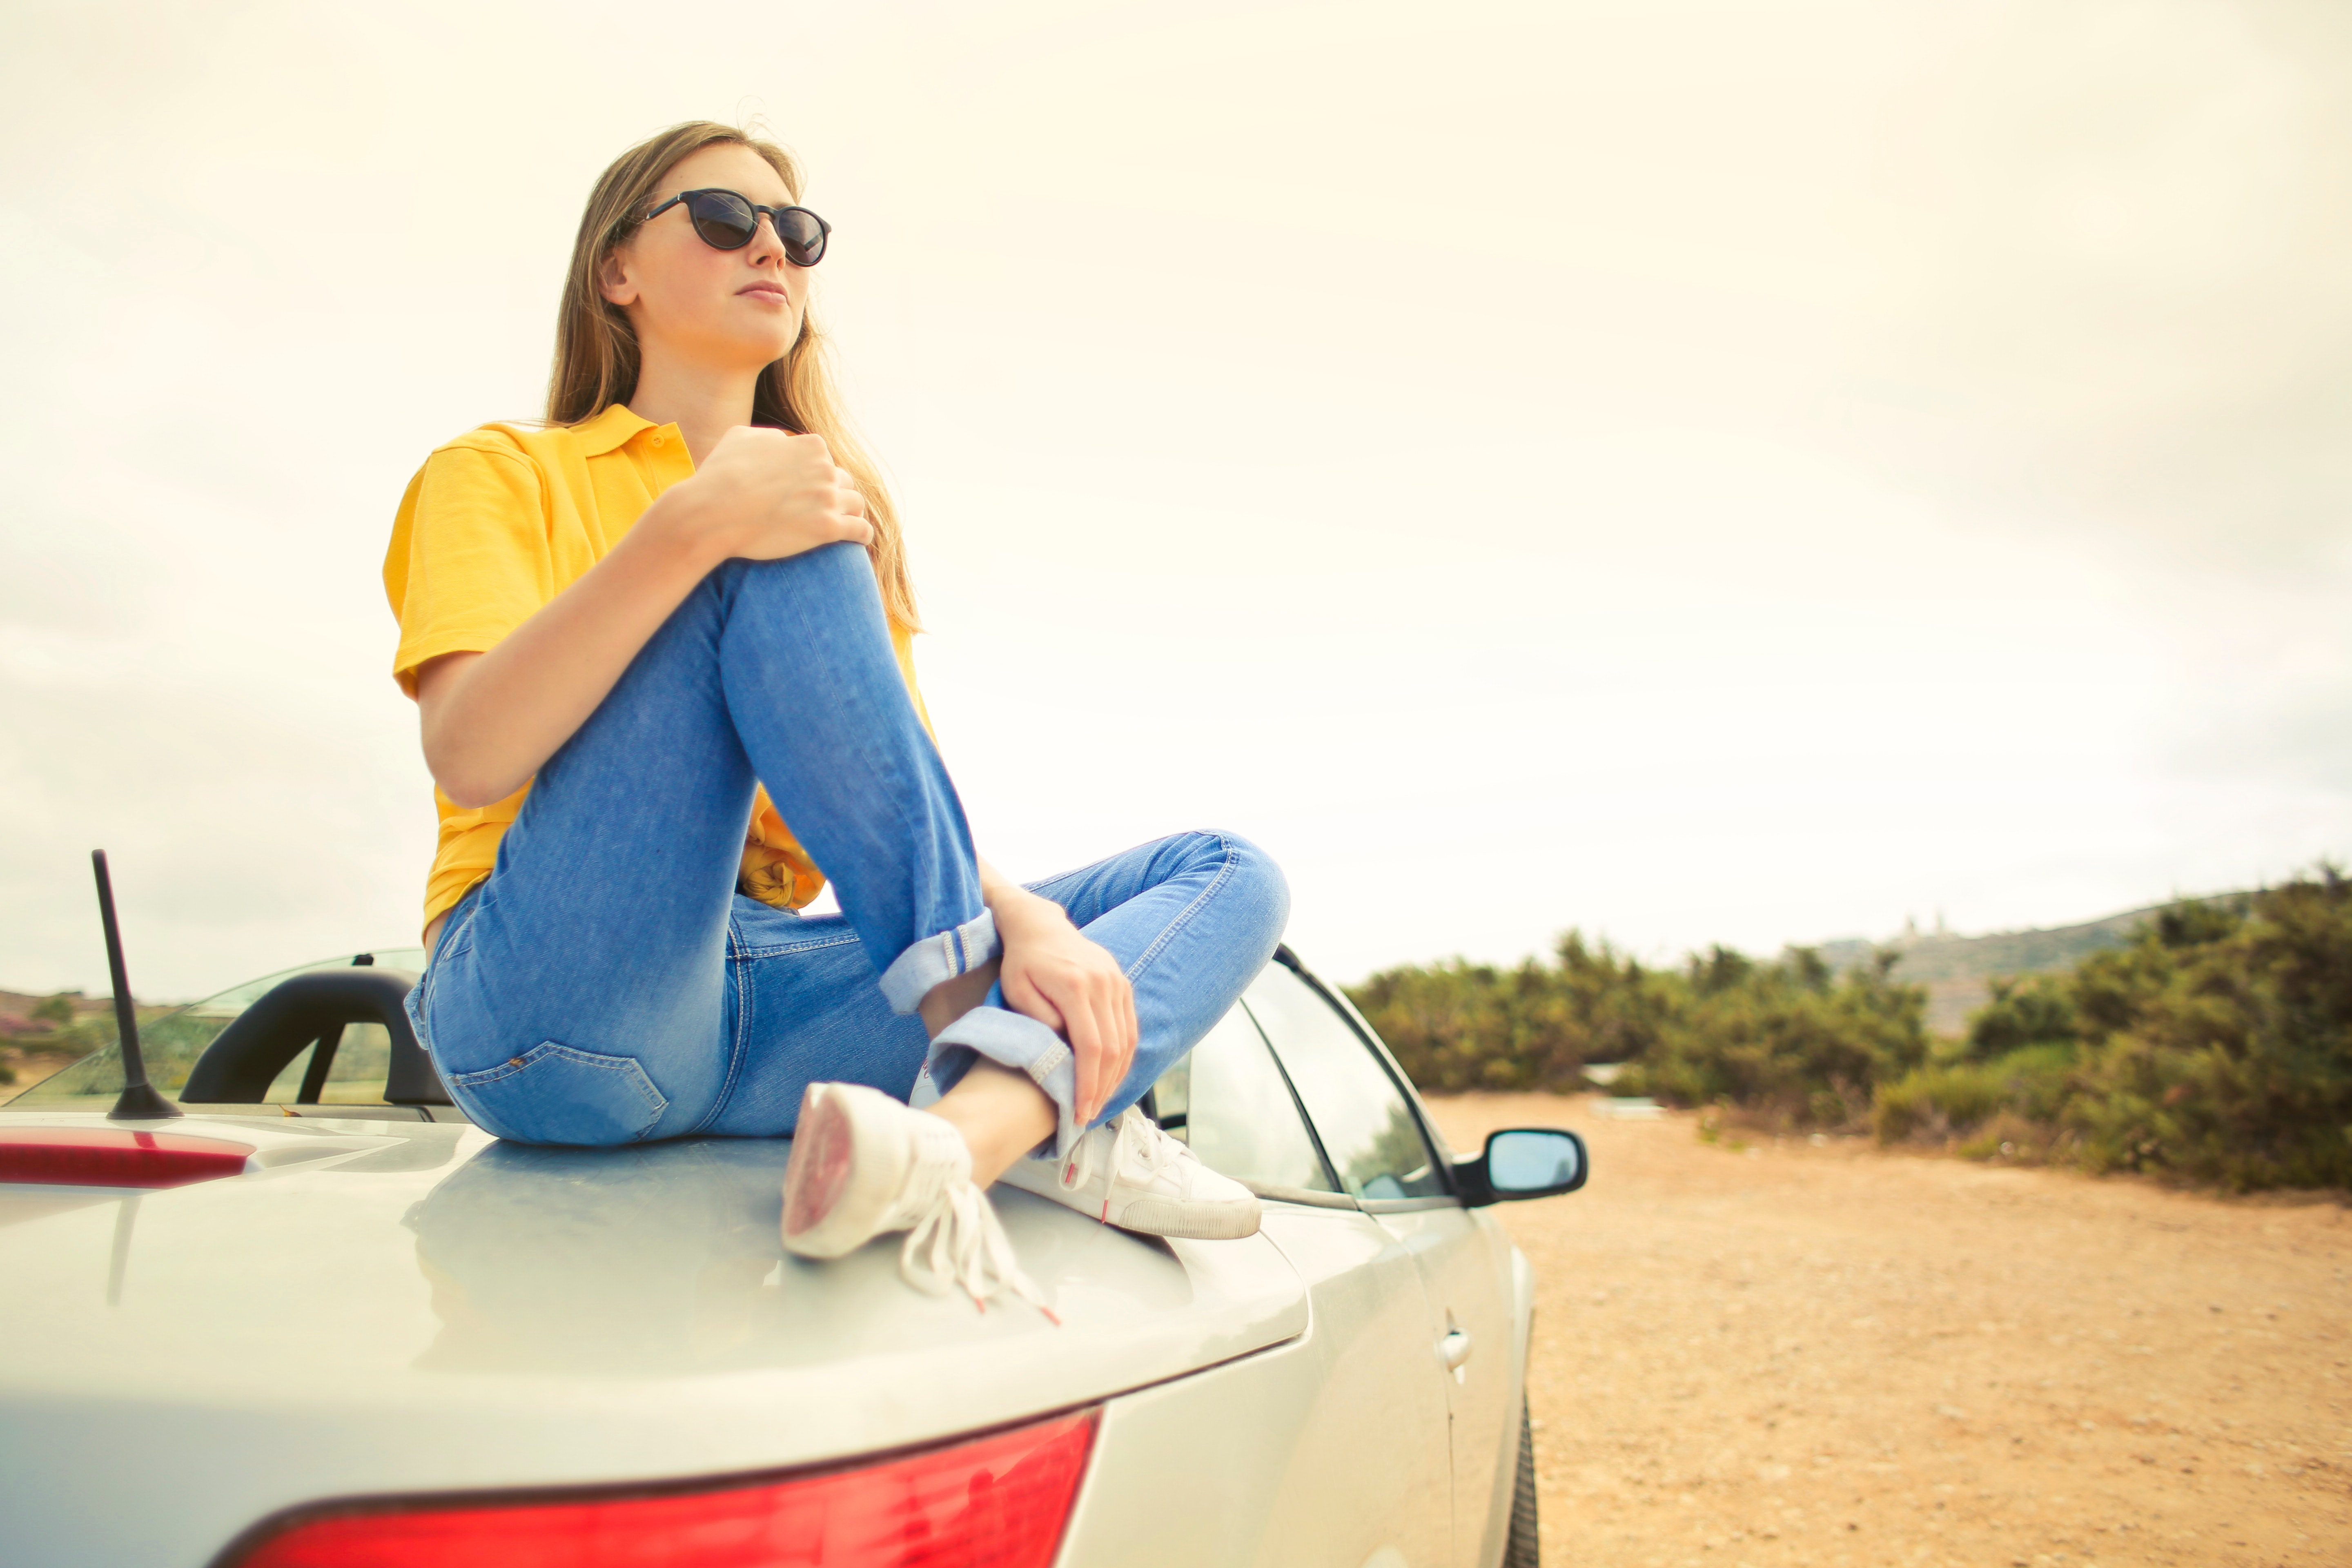 Woman wears yellow shirt and blue denim jeans sits on silver car photo